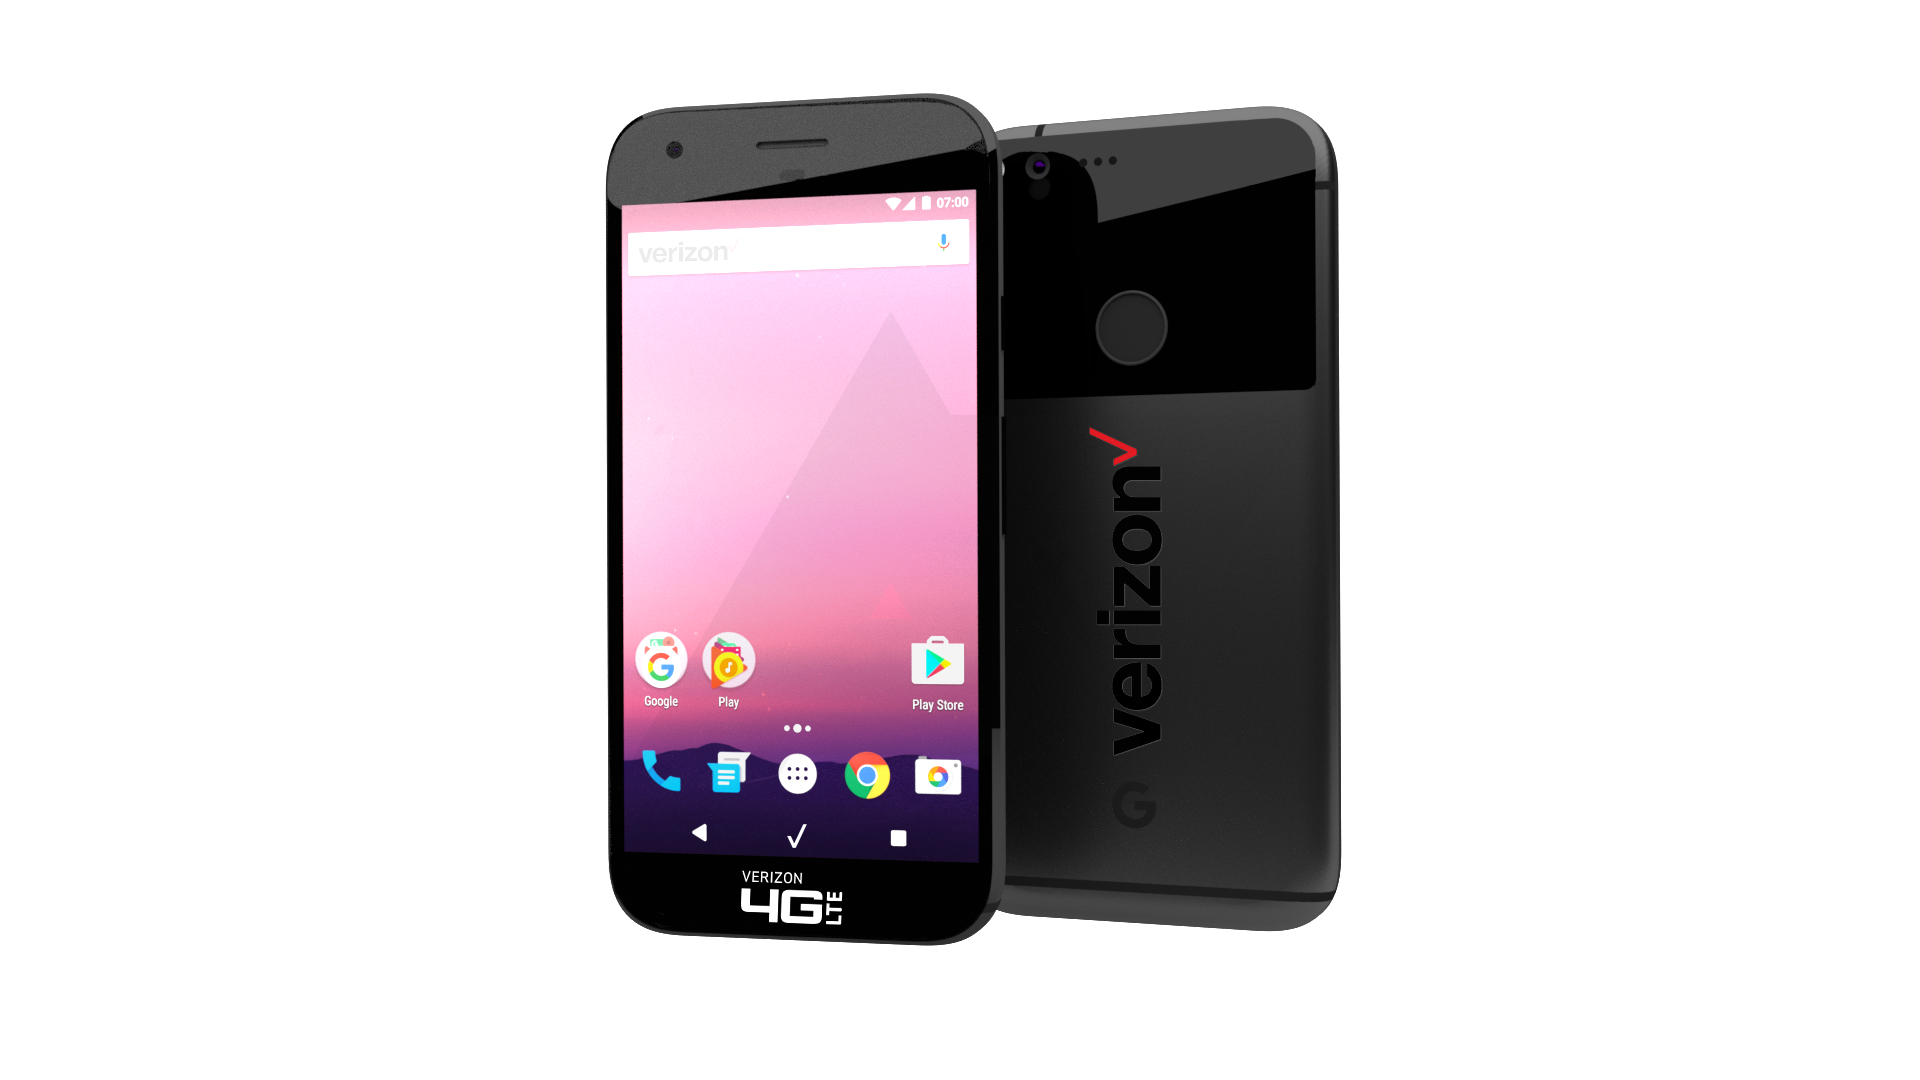 Phone Best Android Phones For Verizon yep verizon will probably sell the 2016 nexus phones youve seen evan blasss tweet on matter by now allegedly marlin and sailfish blass doesn